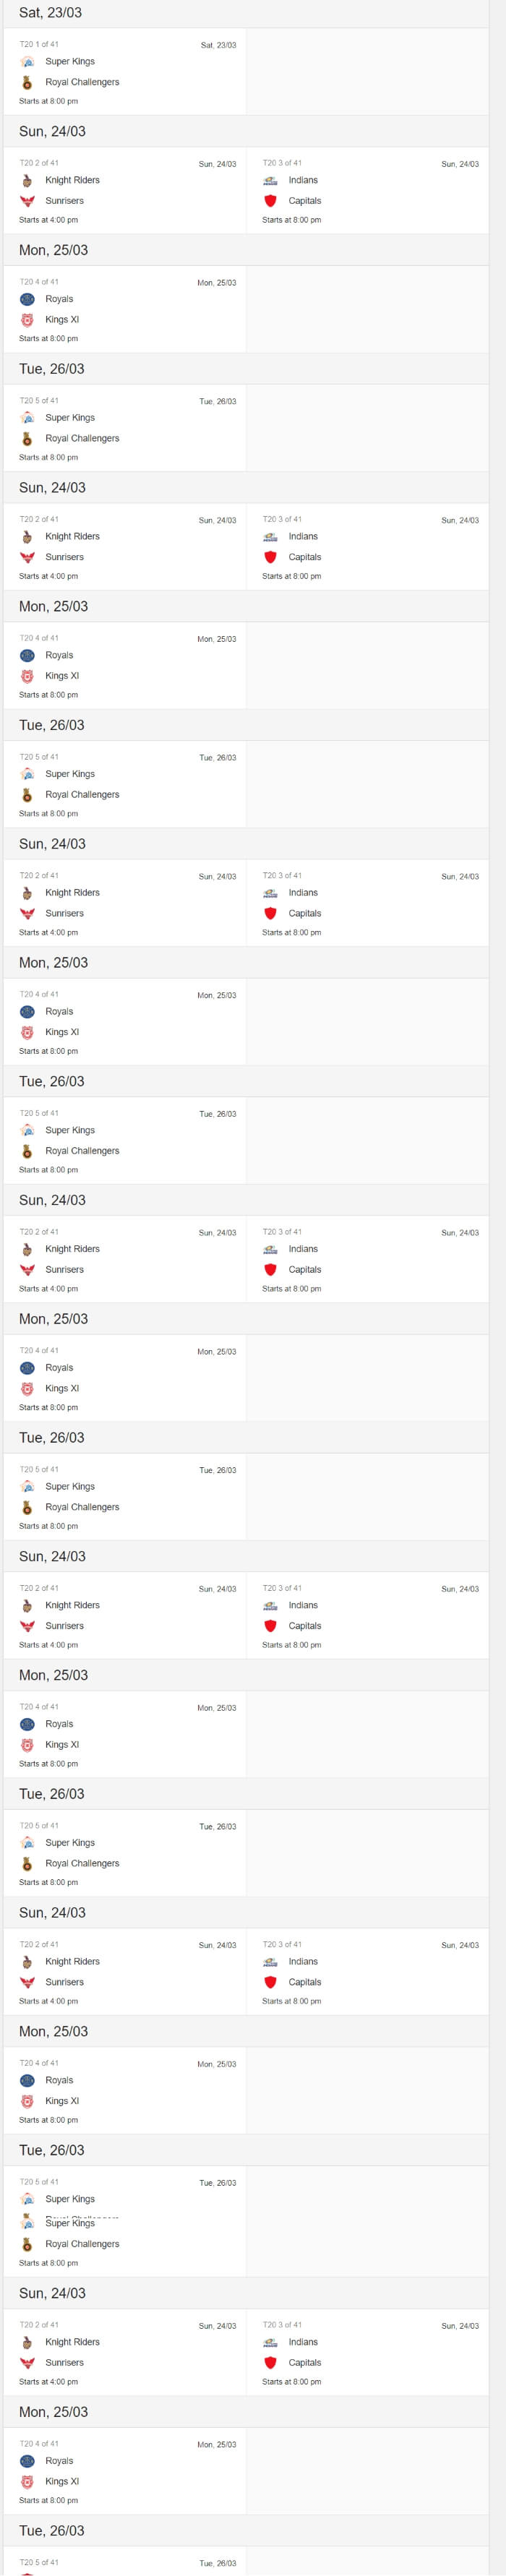 IPL 2019 calendar download